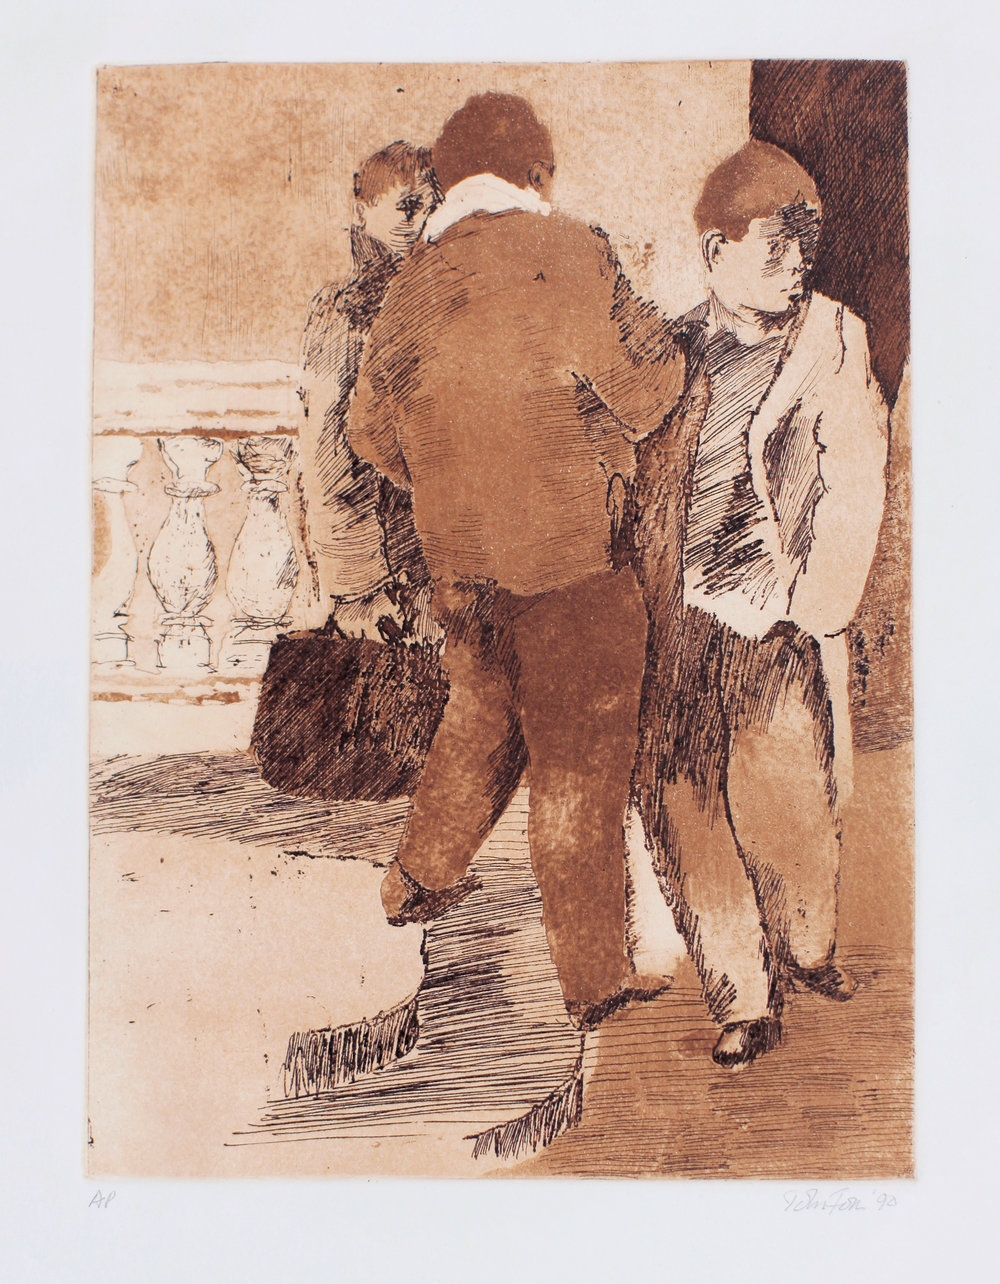 1990_Three_Men_Standing_on_Bridge_etching_drypoint_and_aquatint_on_paper_20x16in_WPF437.jpg